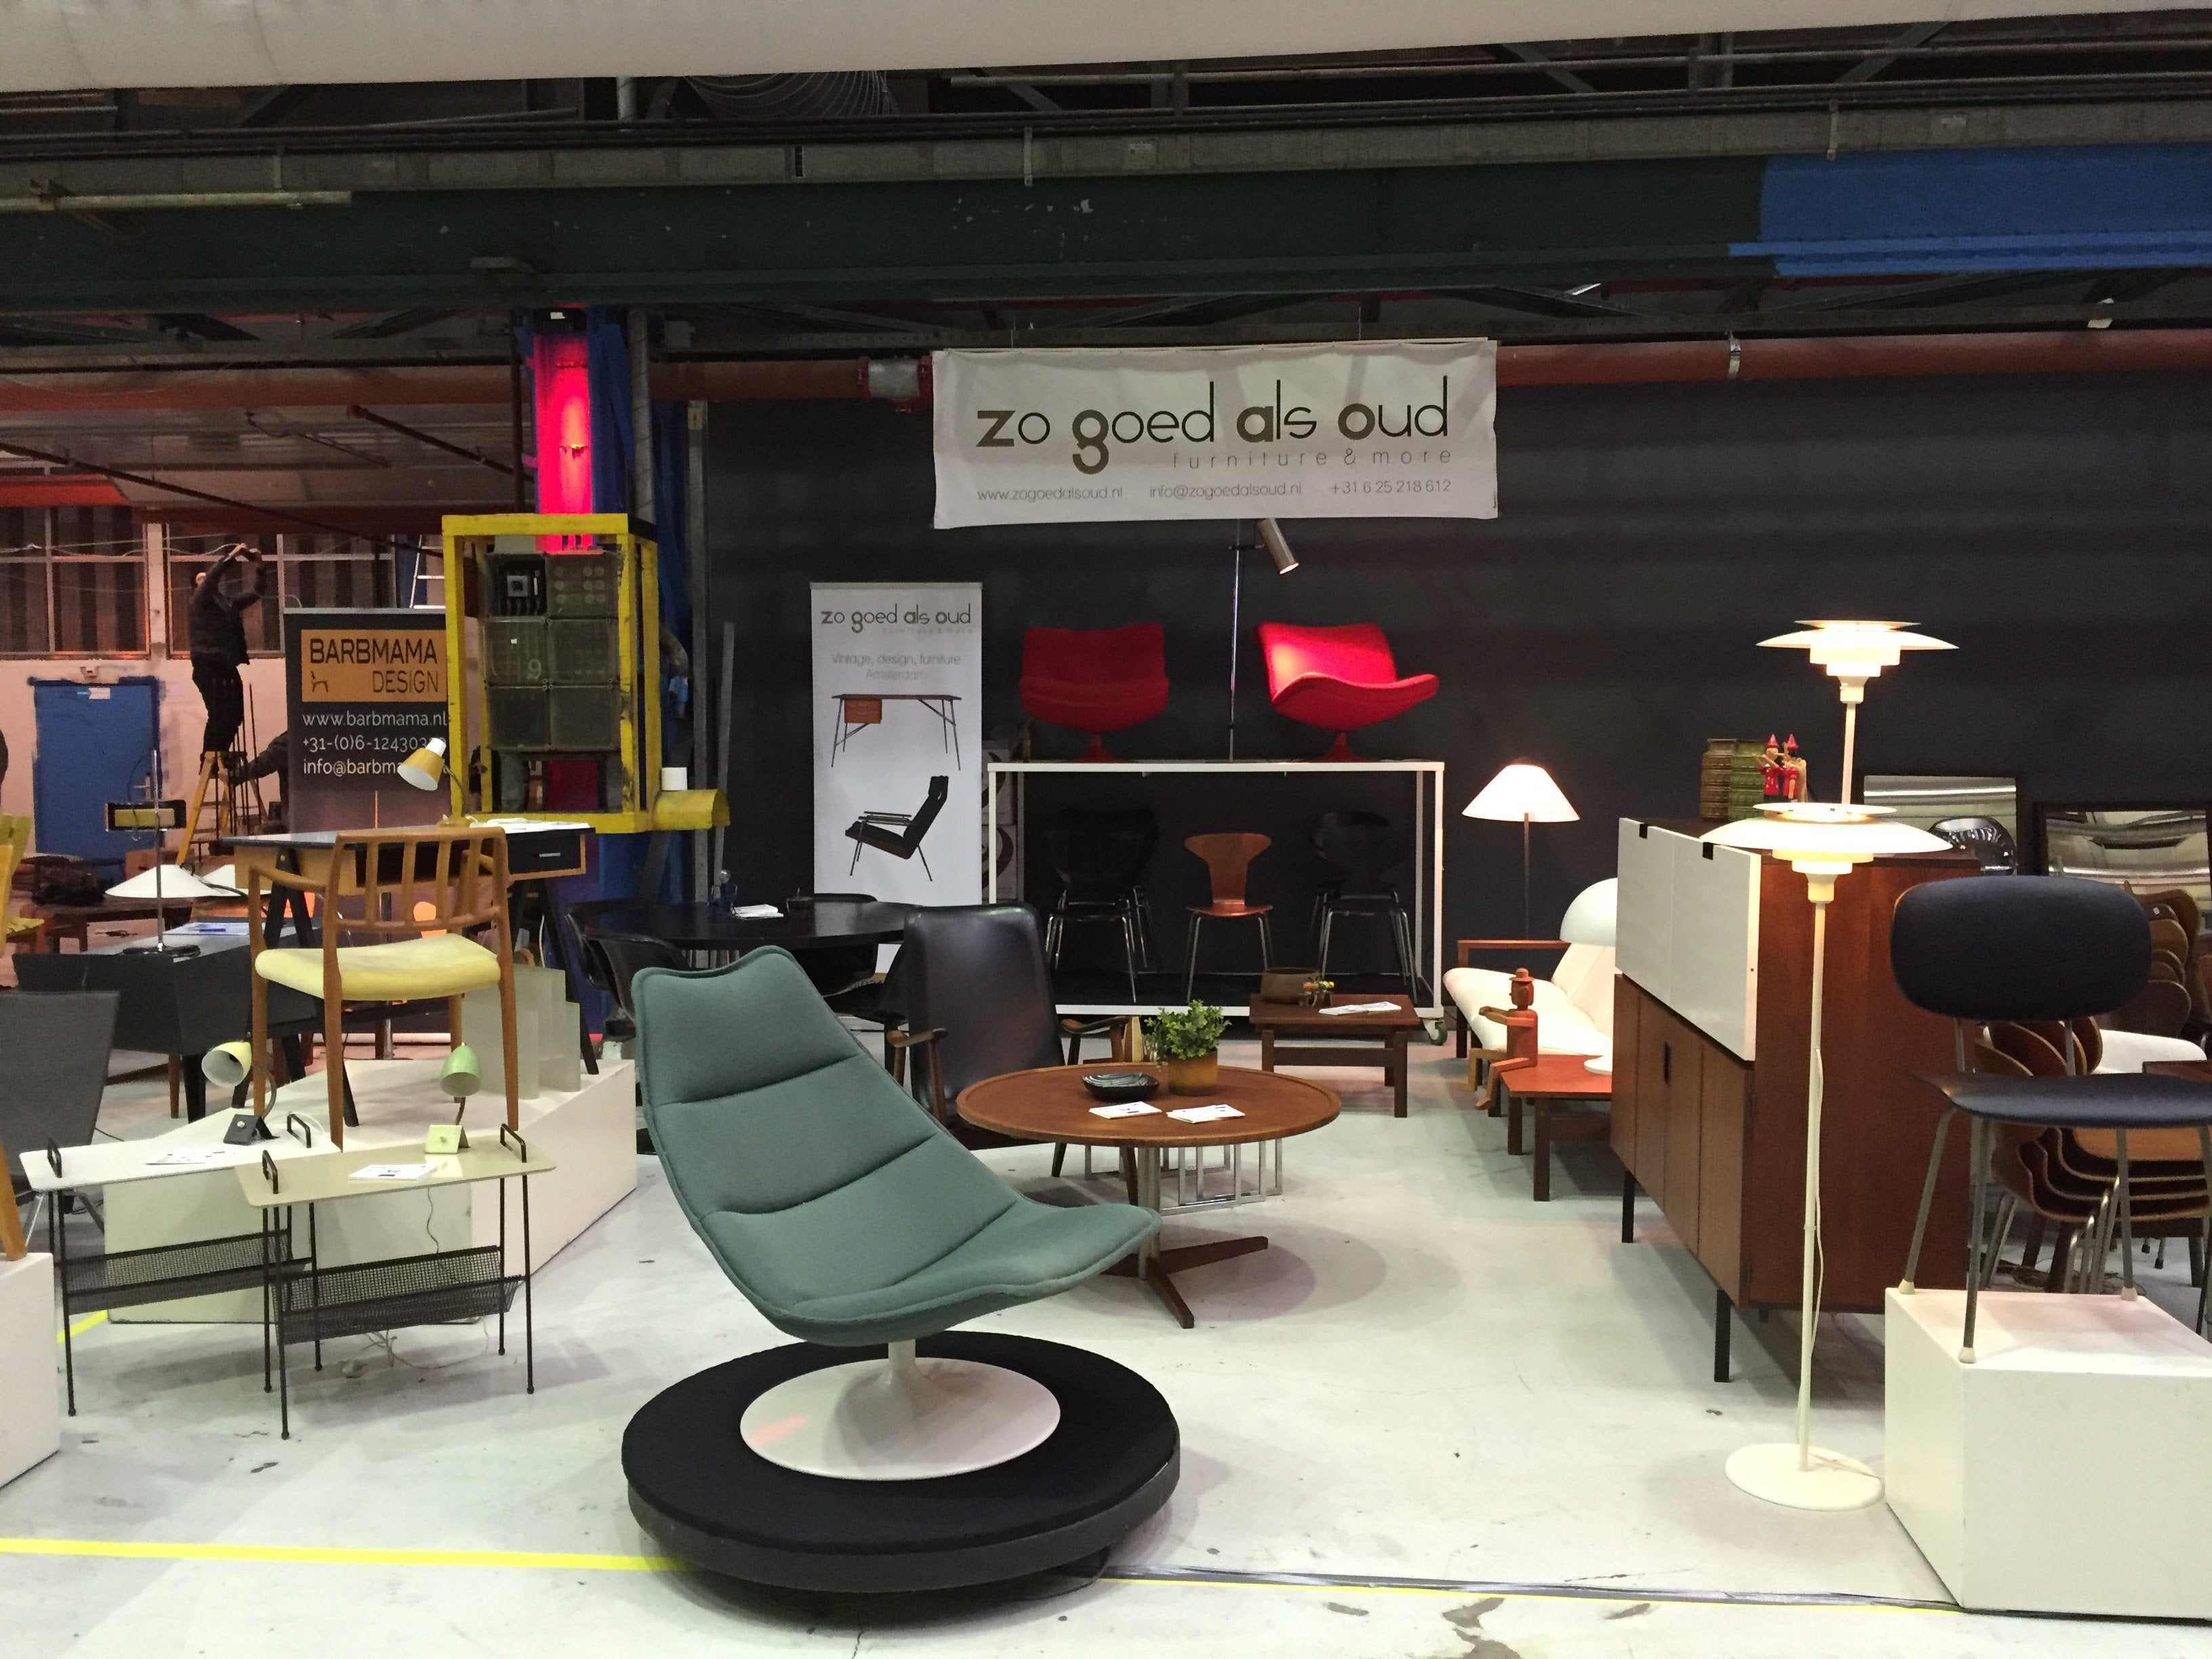 Stdibs antiques vintage and mid century modern furniture